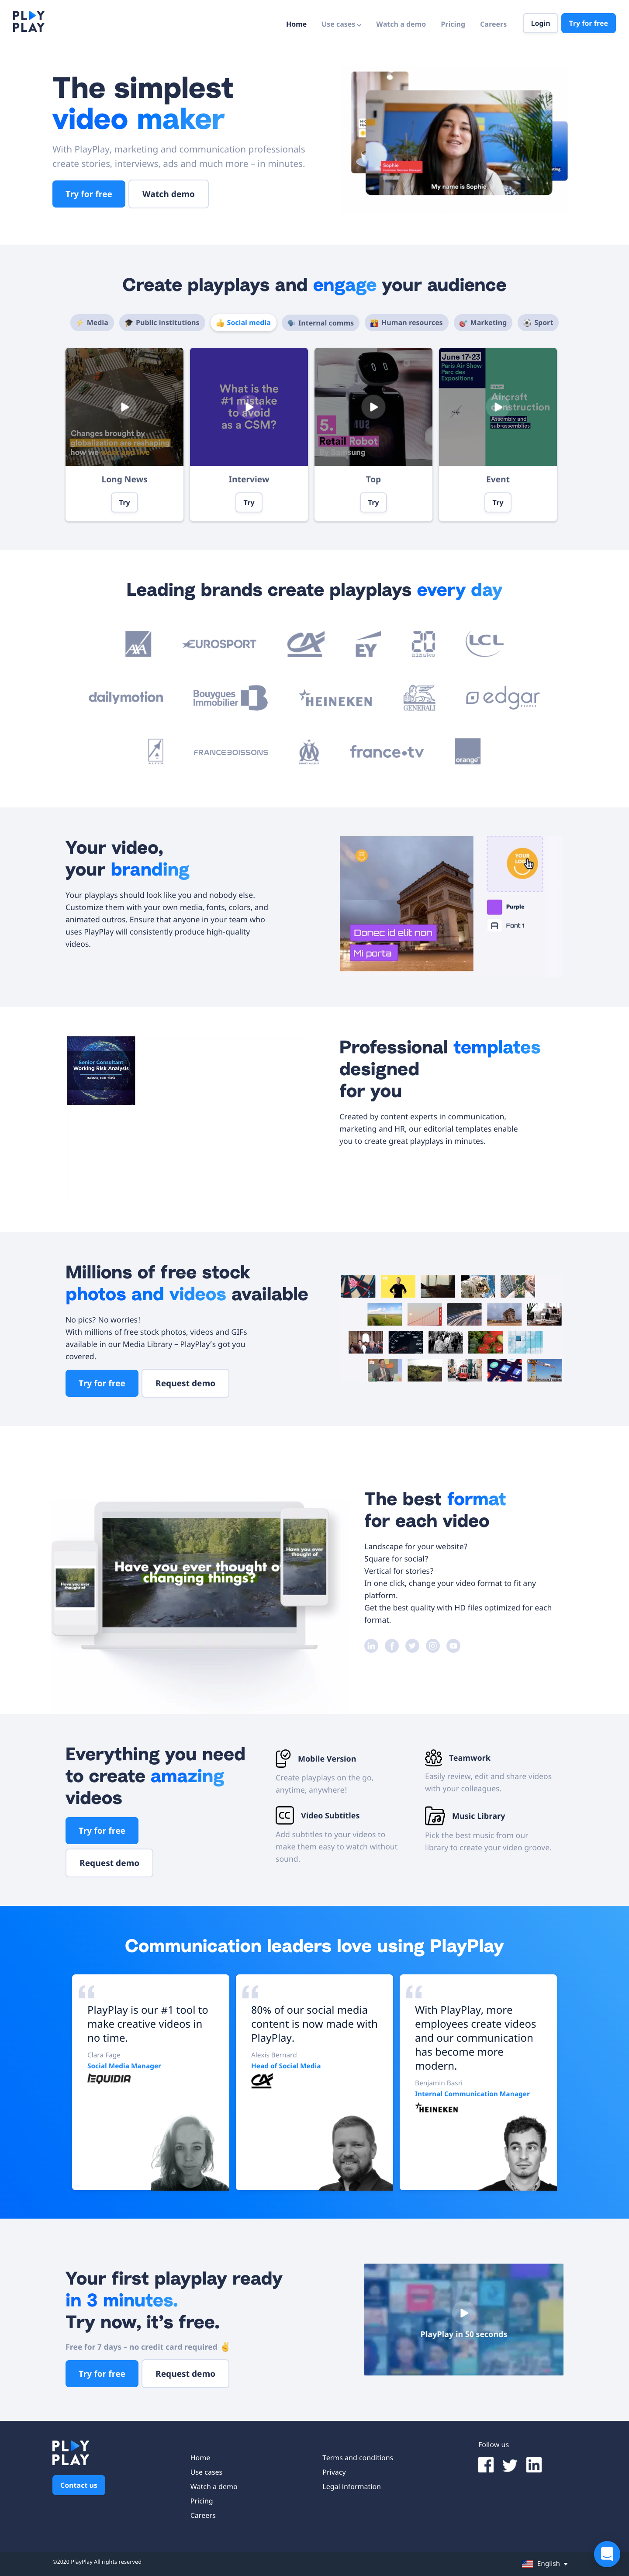 PlayPlay Landing Page